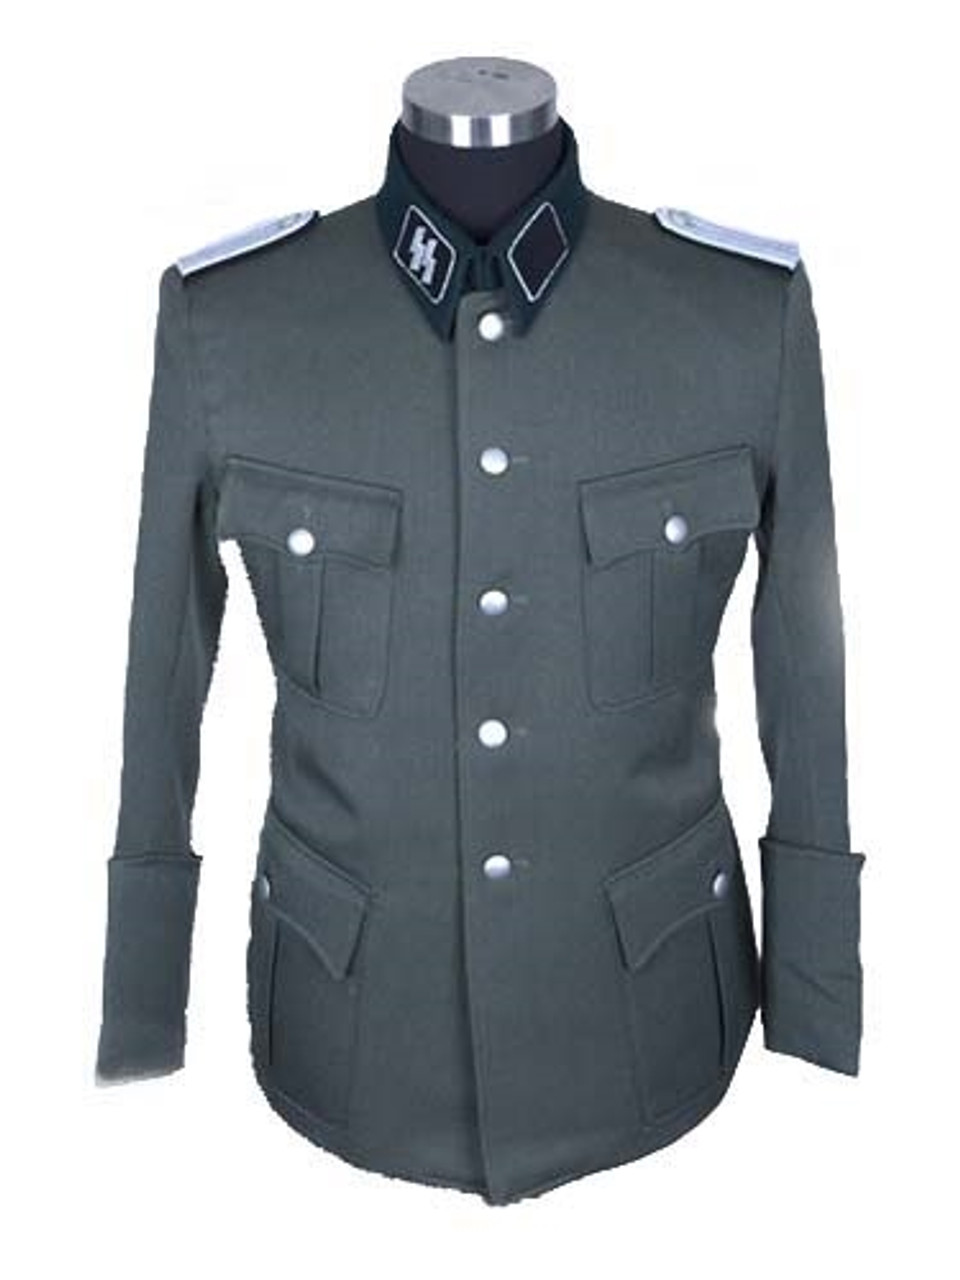 SS German Officer Dress Tunic in Gabardine Twill with insignia from Hessen Antique